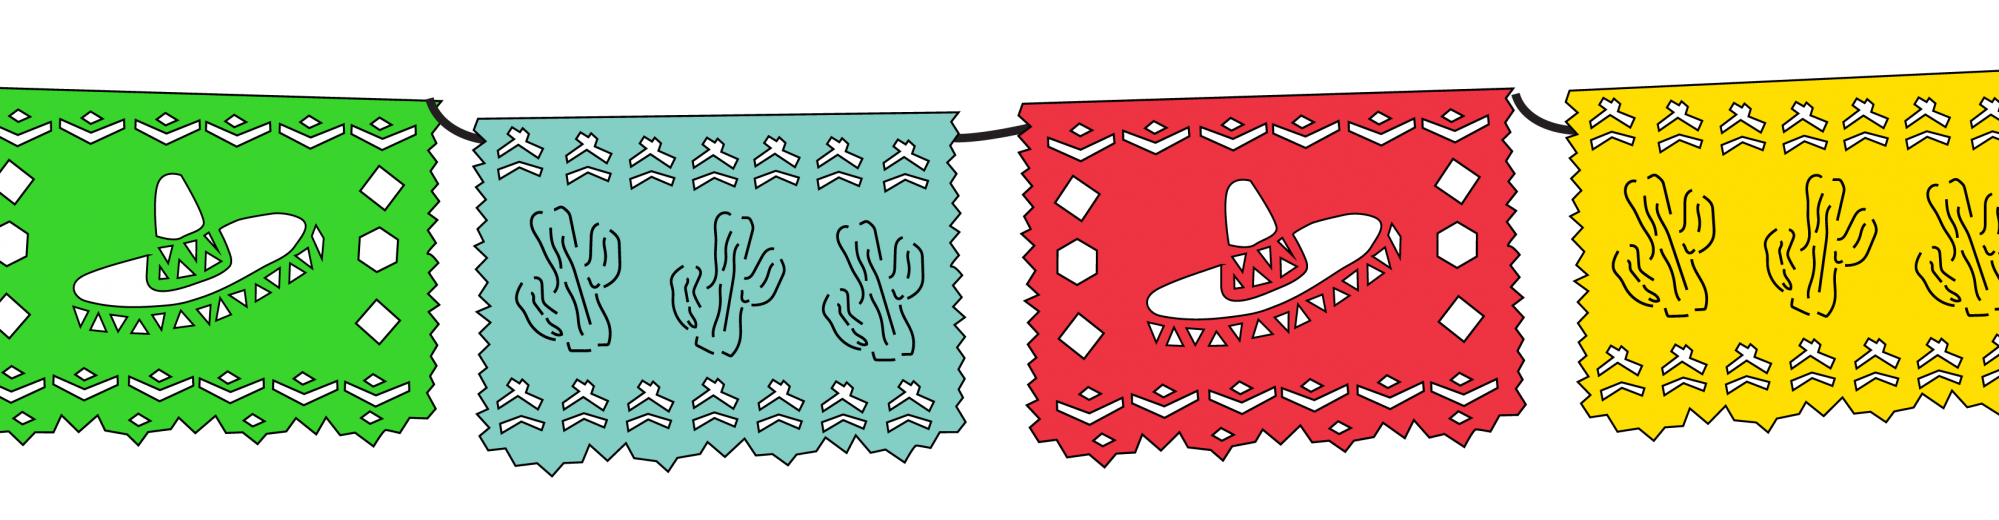 clip royalty free stock Papel picado clipart picado banner.  images of transparent.